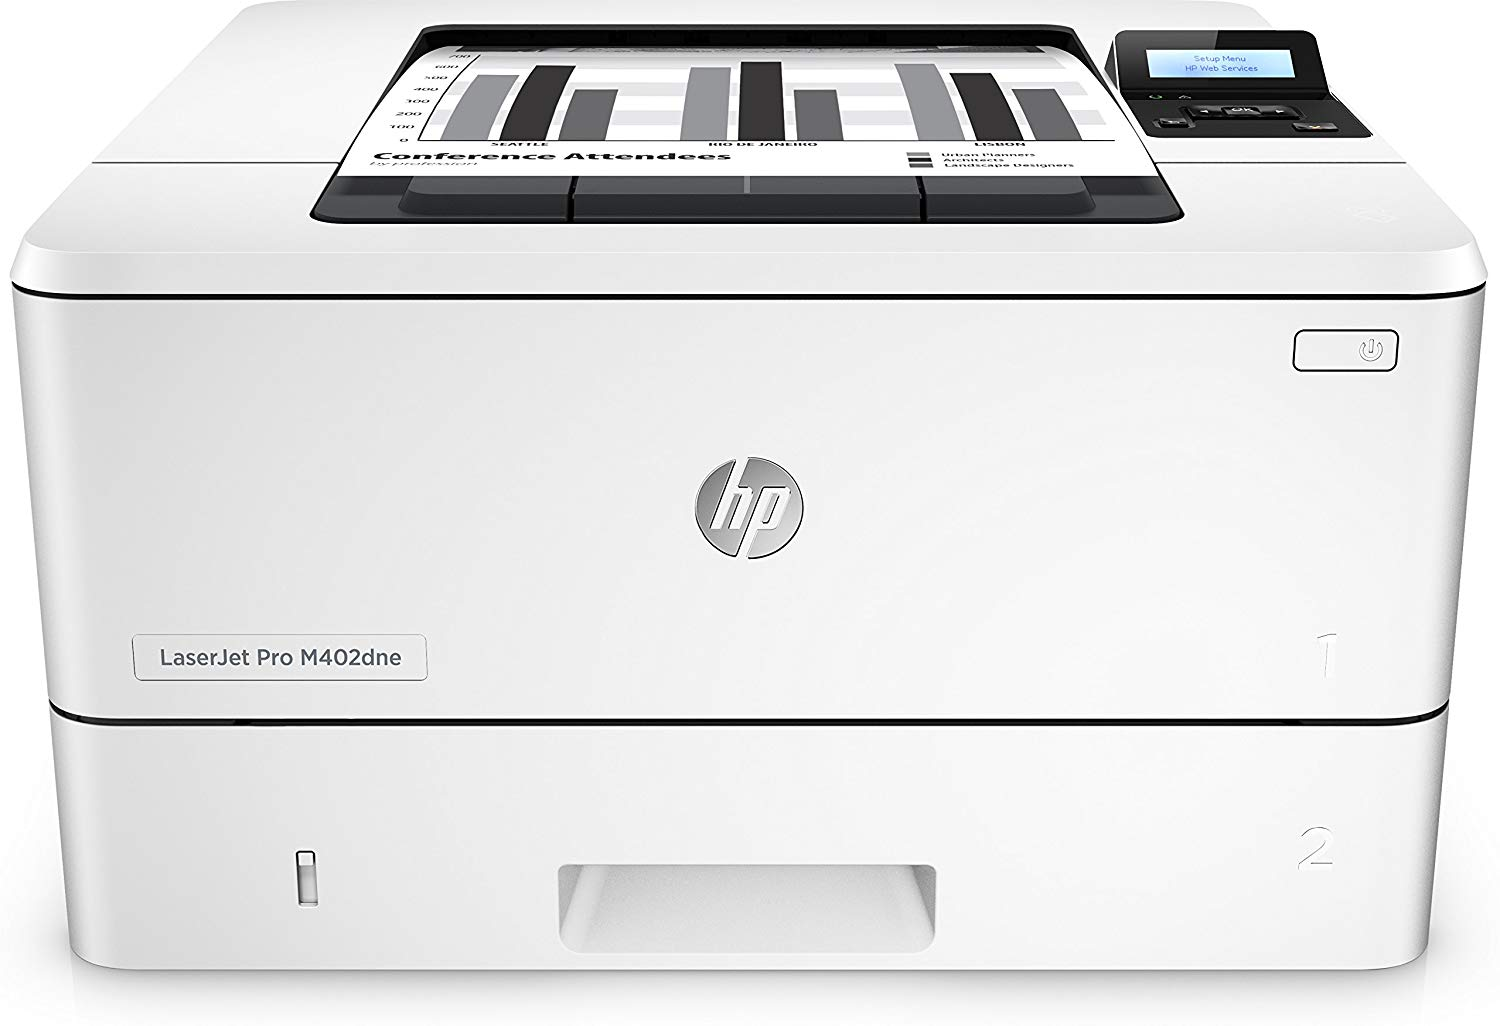 Hp photosmart c5200 all in one printer driver download windows 7.